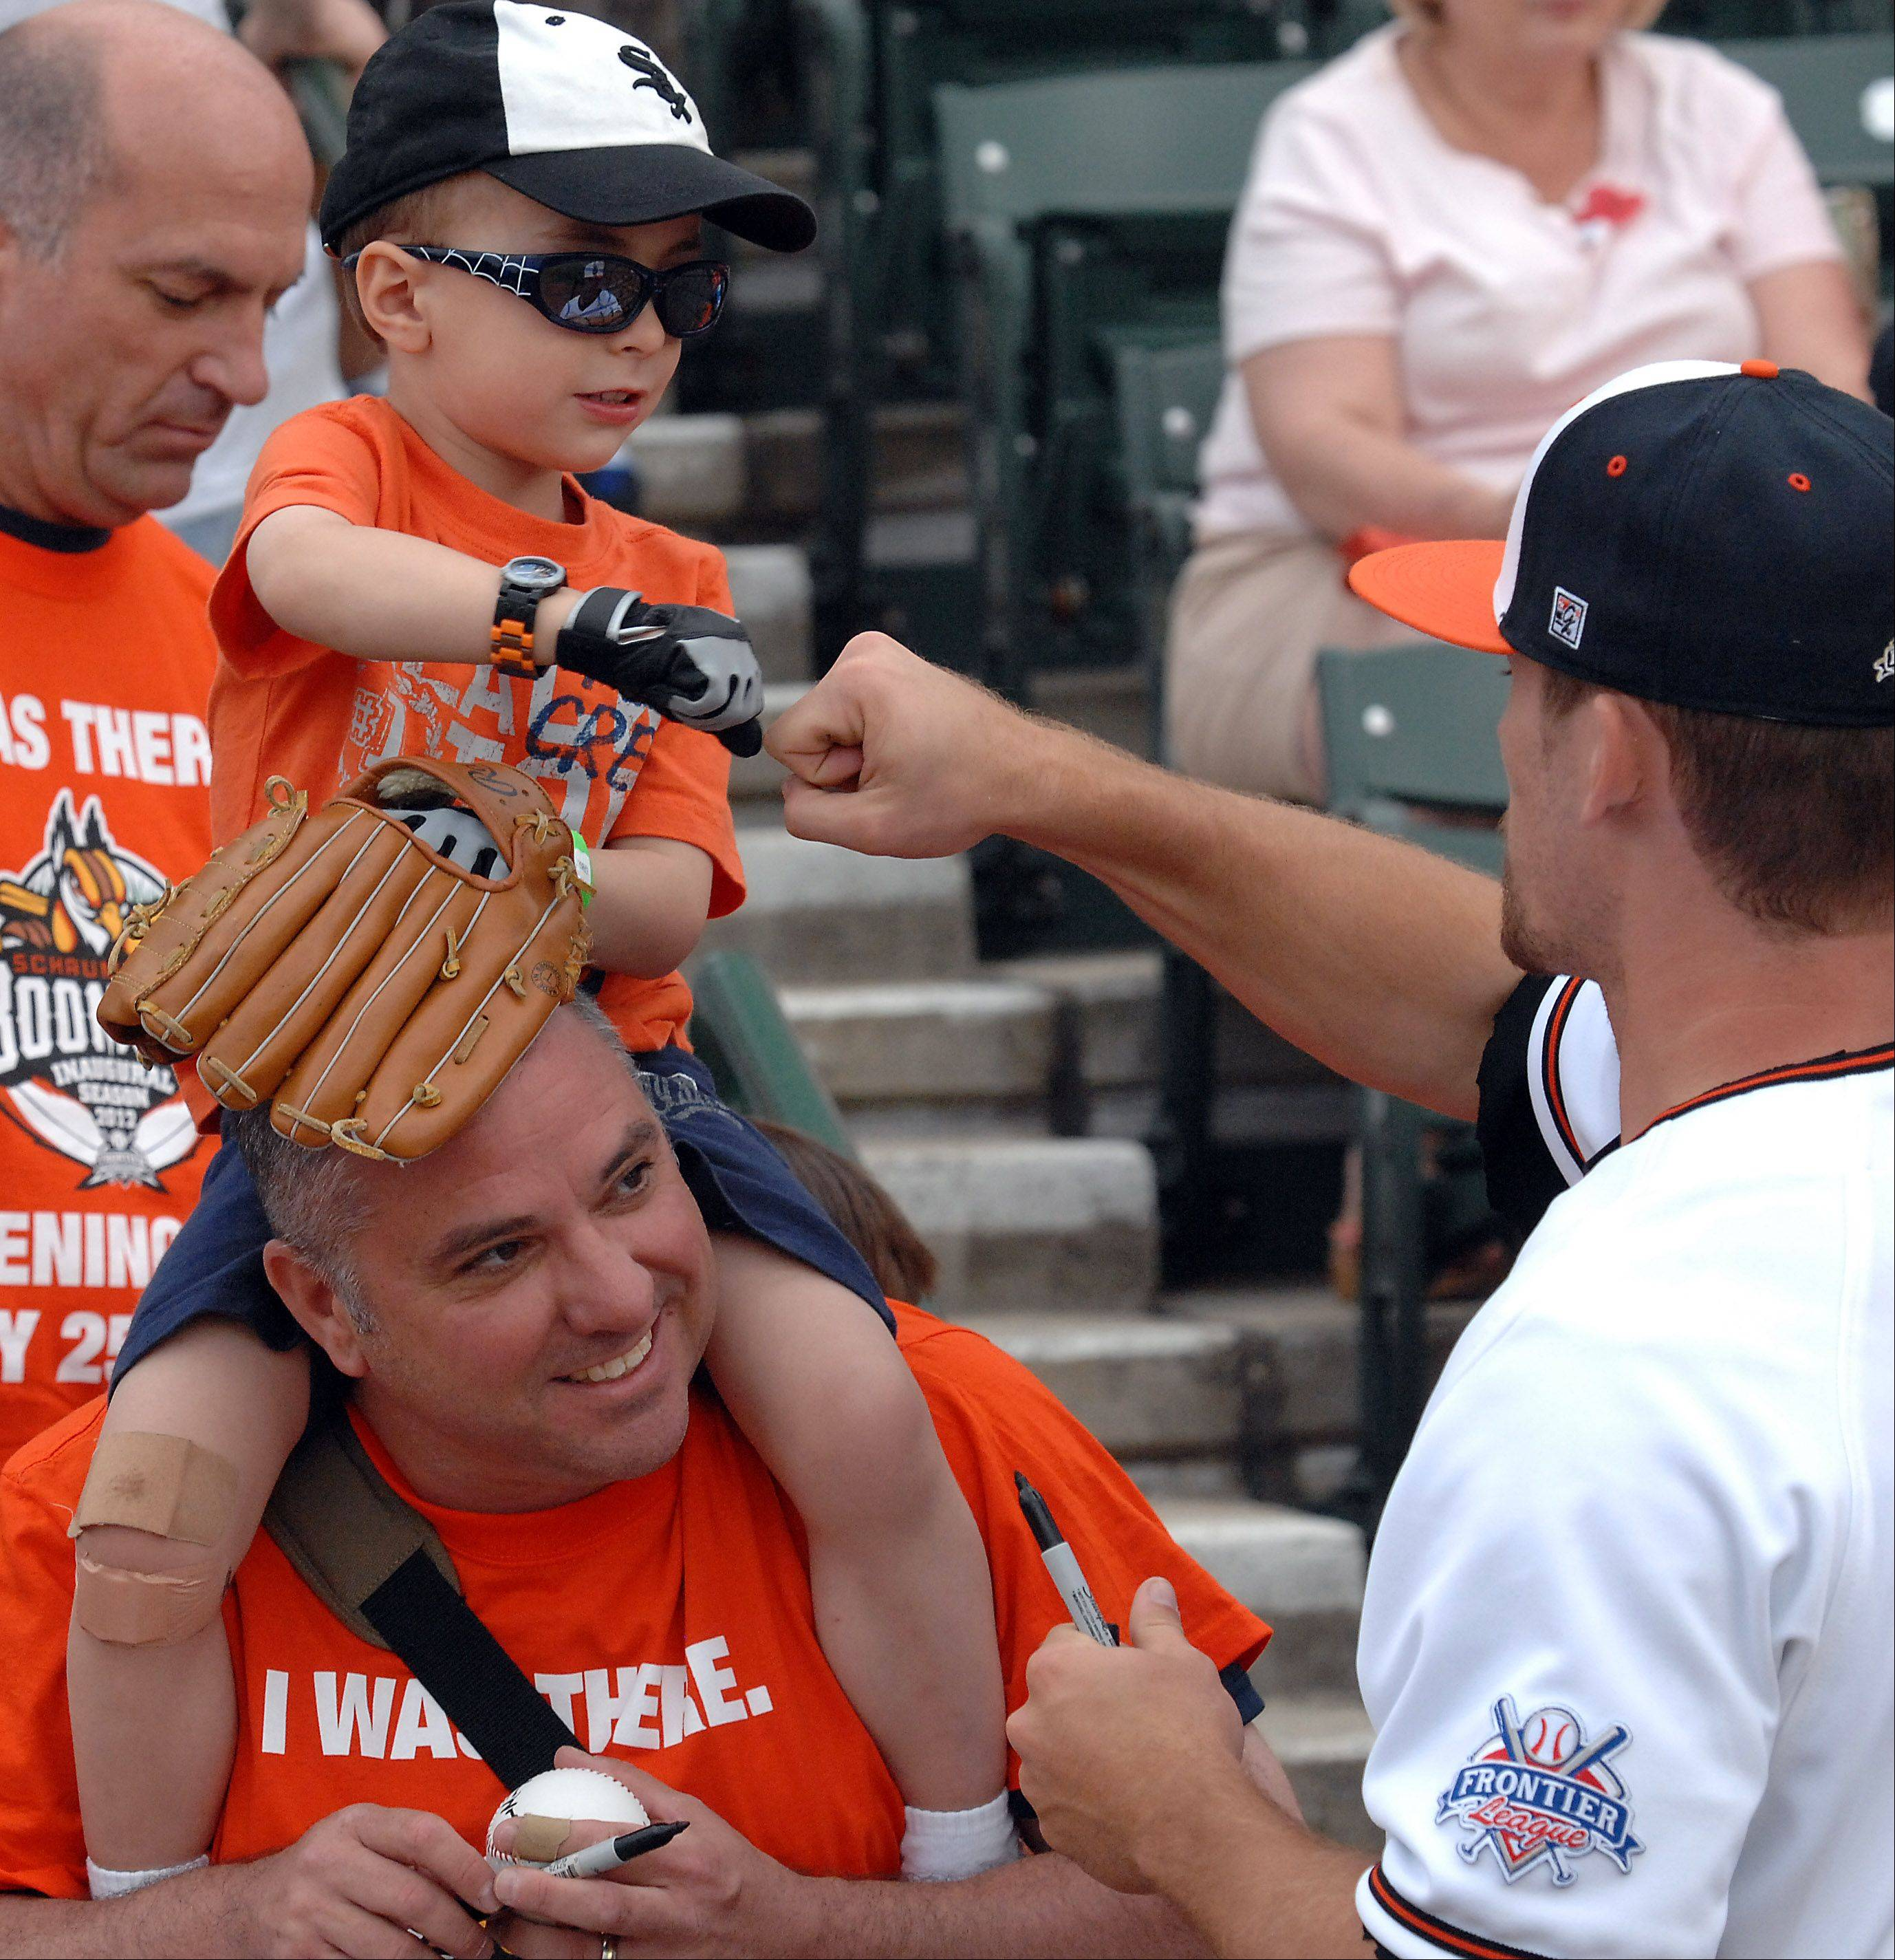 Baseball fans Brian Dykes and his son Calvin,3, of Glen Ellyn bump fists with player Chad Mozingo.